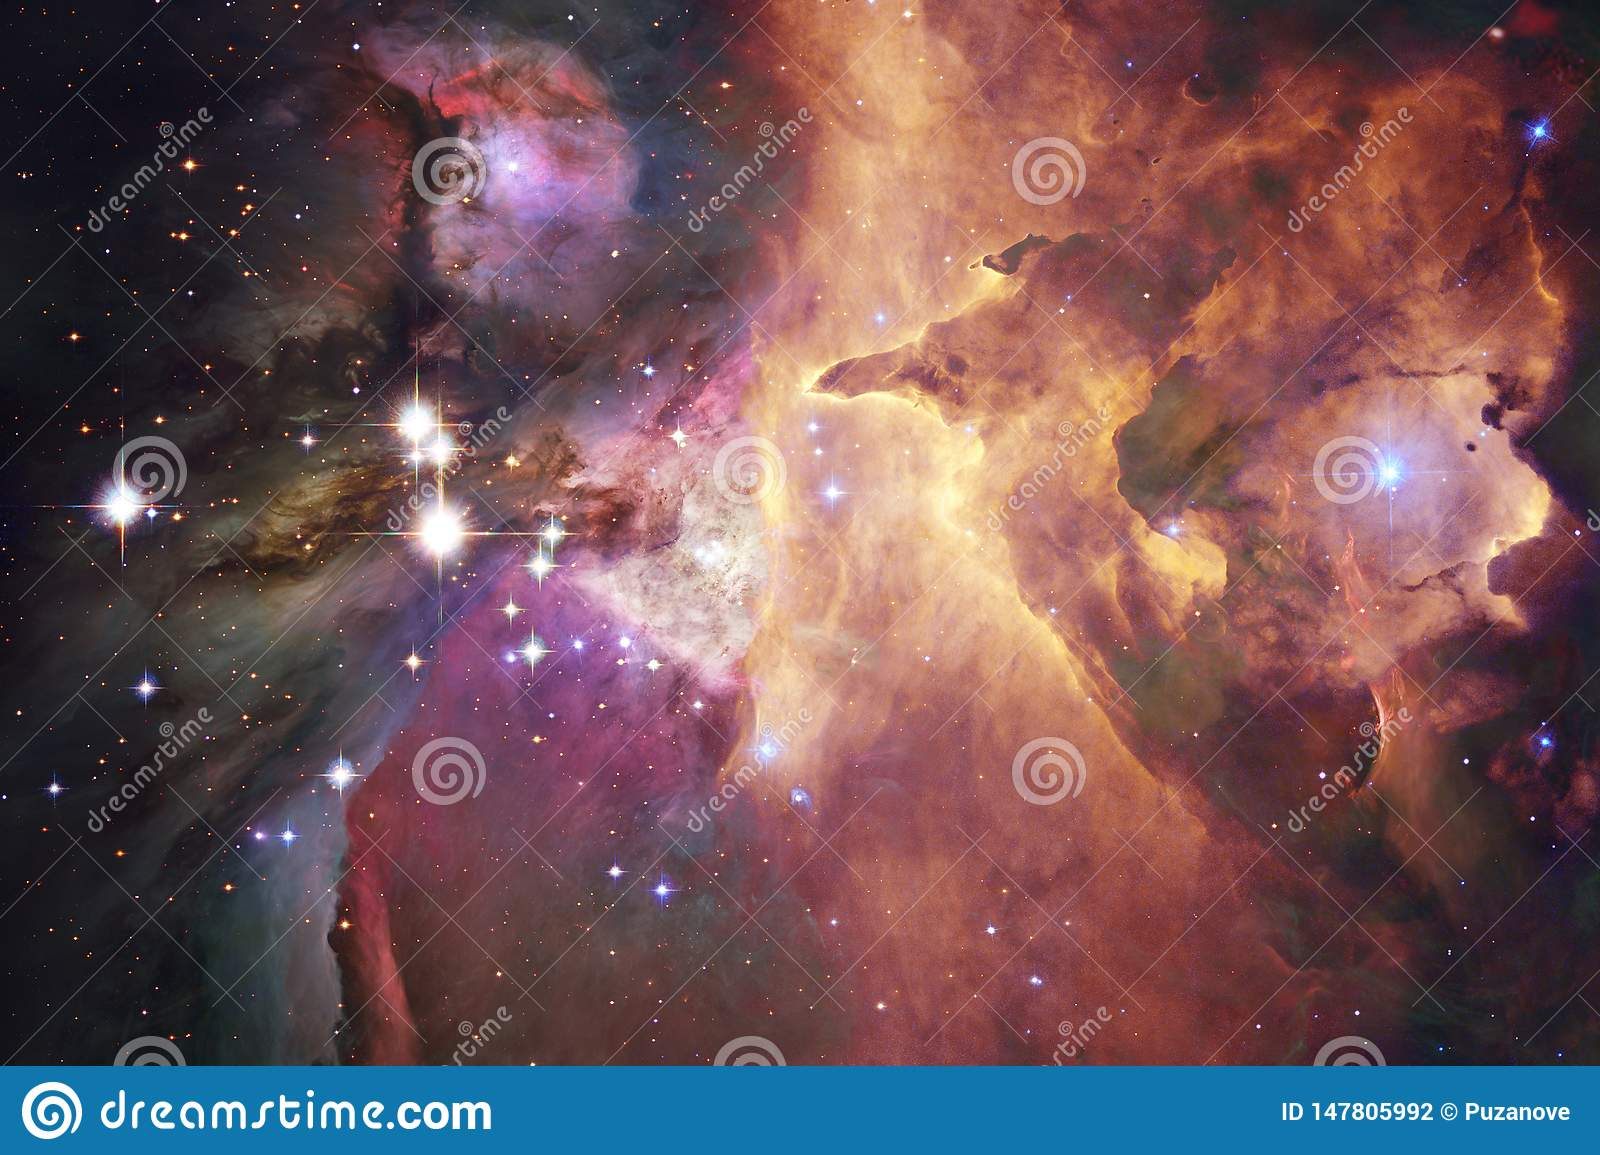 Nebula. Outer space image that is suitable for wallpaper